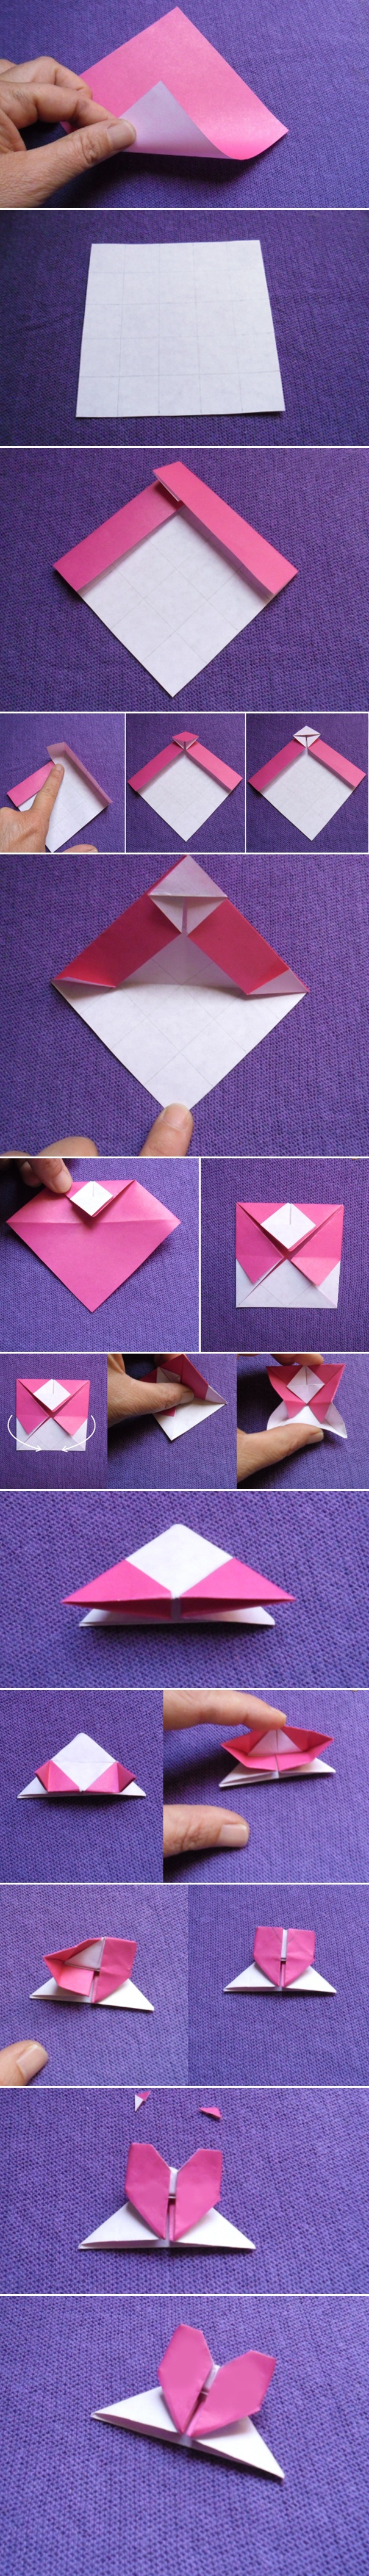 homemade valentines day gifts her origami paper heart tutorial